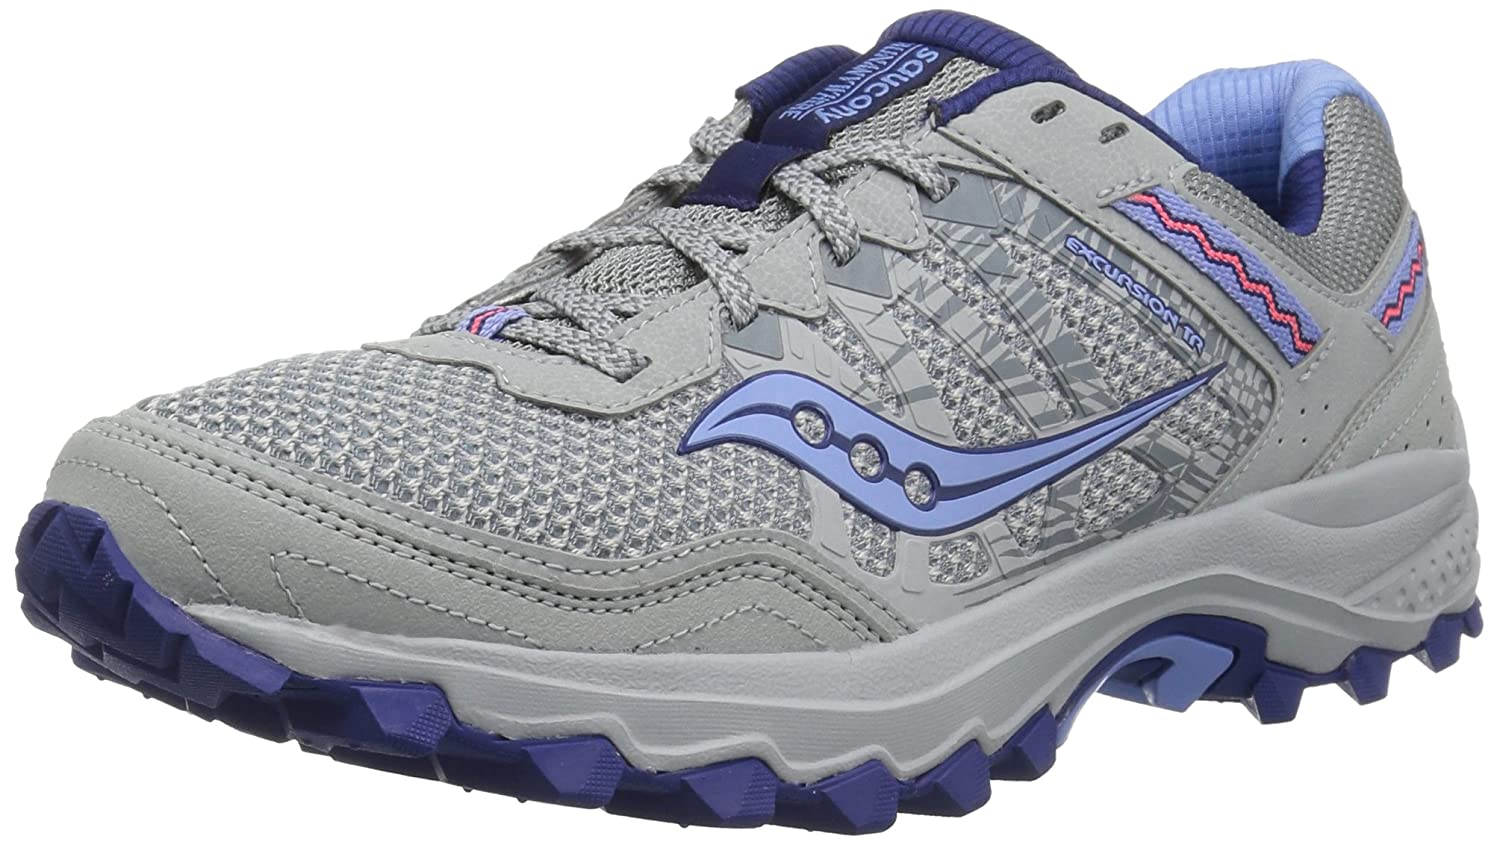 Saucony Women's Excursion Tr12 Sneaker B077Y5T1LL 6 B(M) US|Grey/Blue